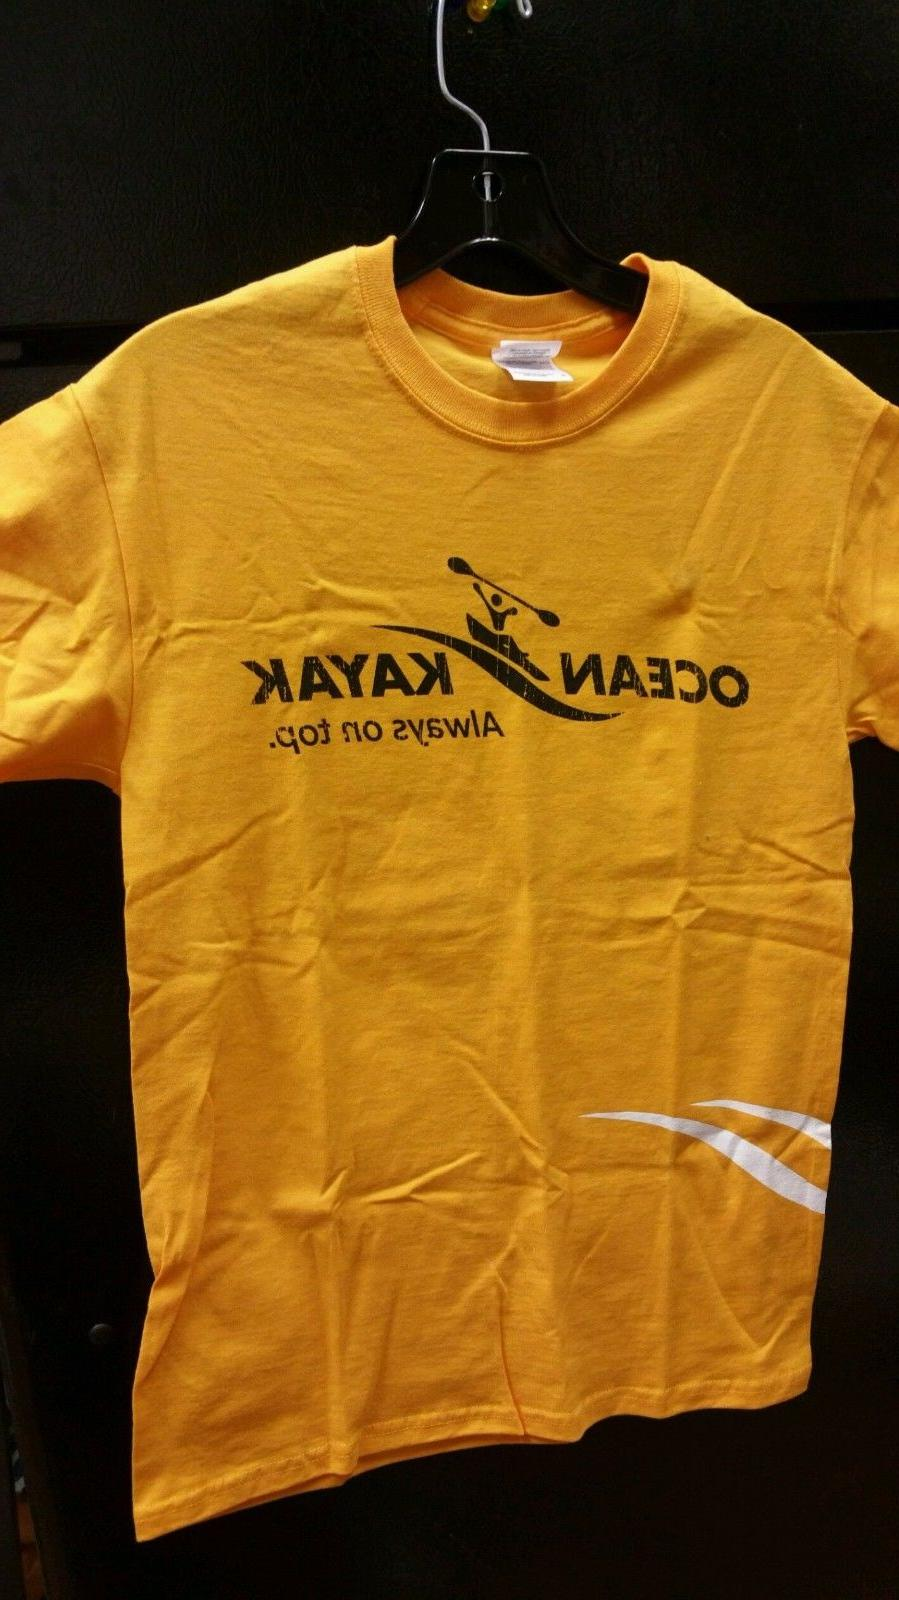 t shirt yellow always on top choose